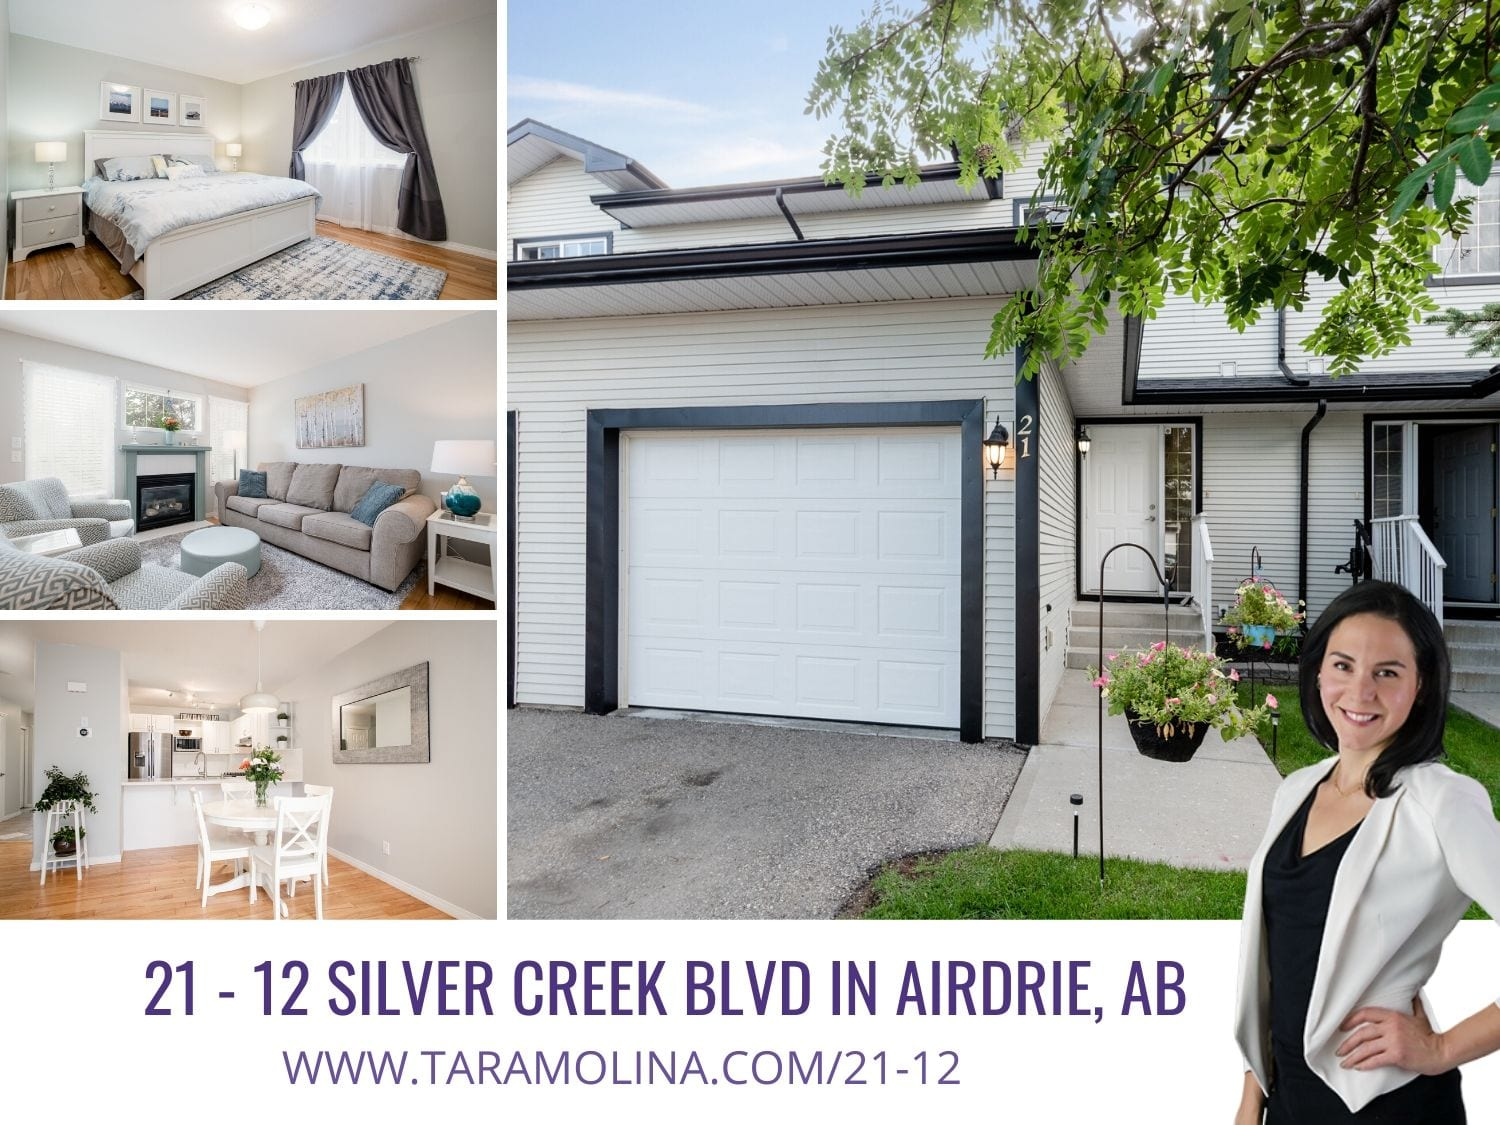 21 - 12 Silver Creek Blvd in Airdrie AB